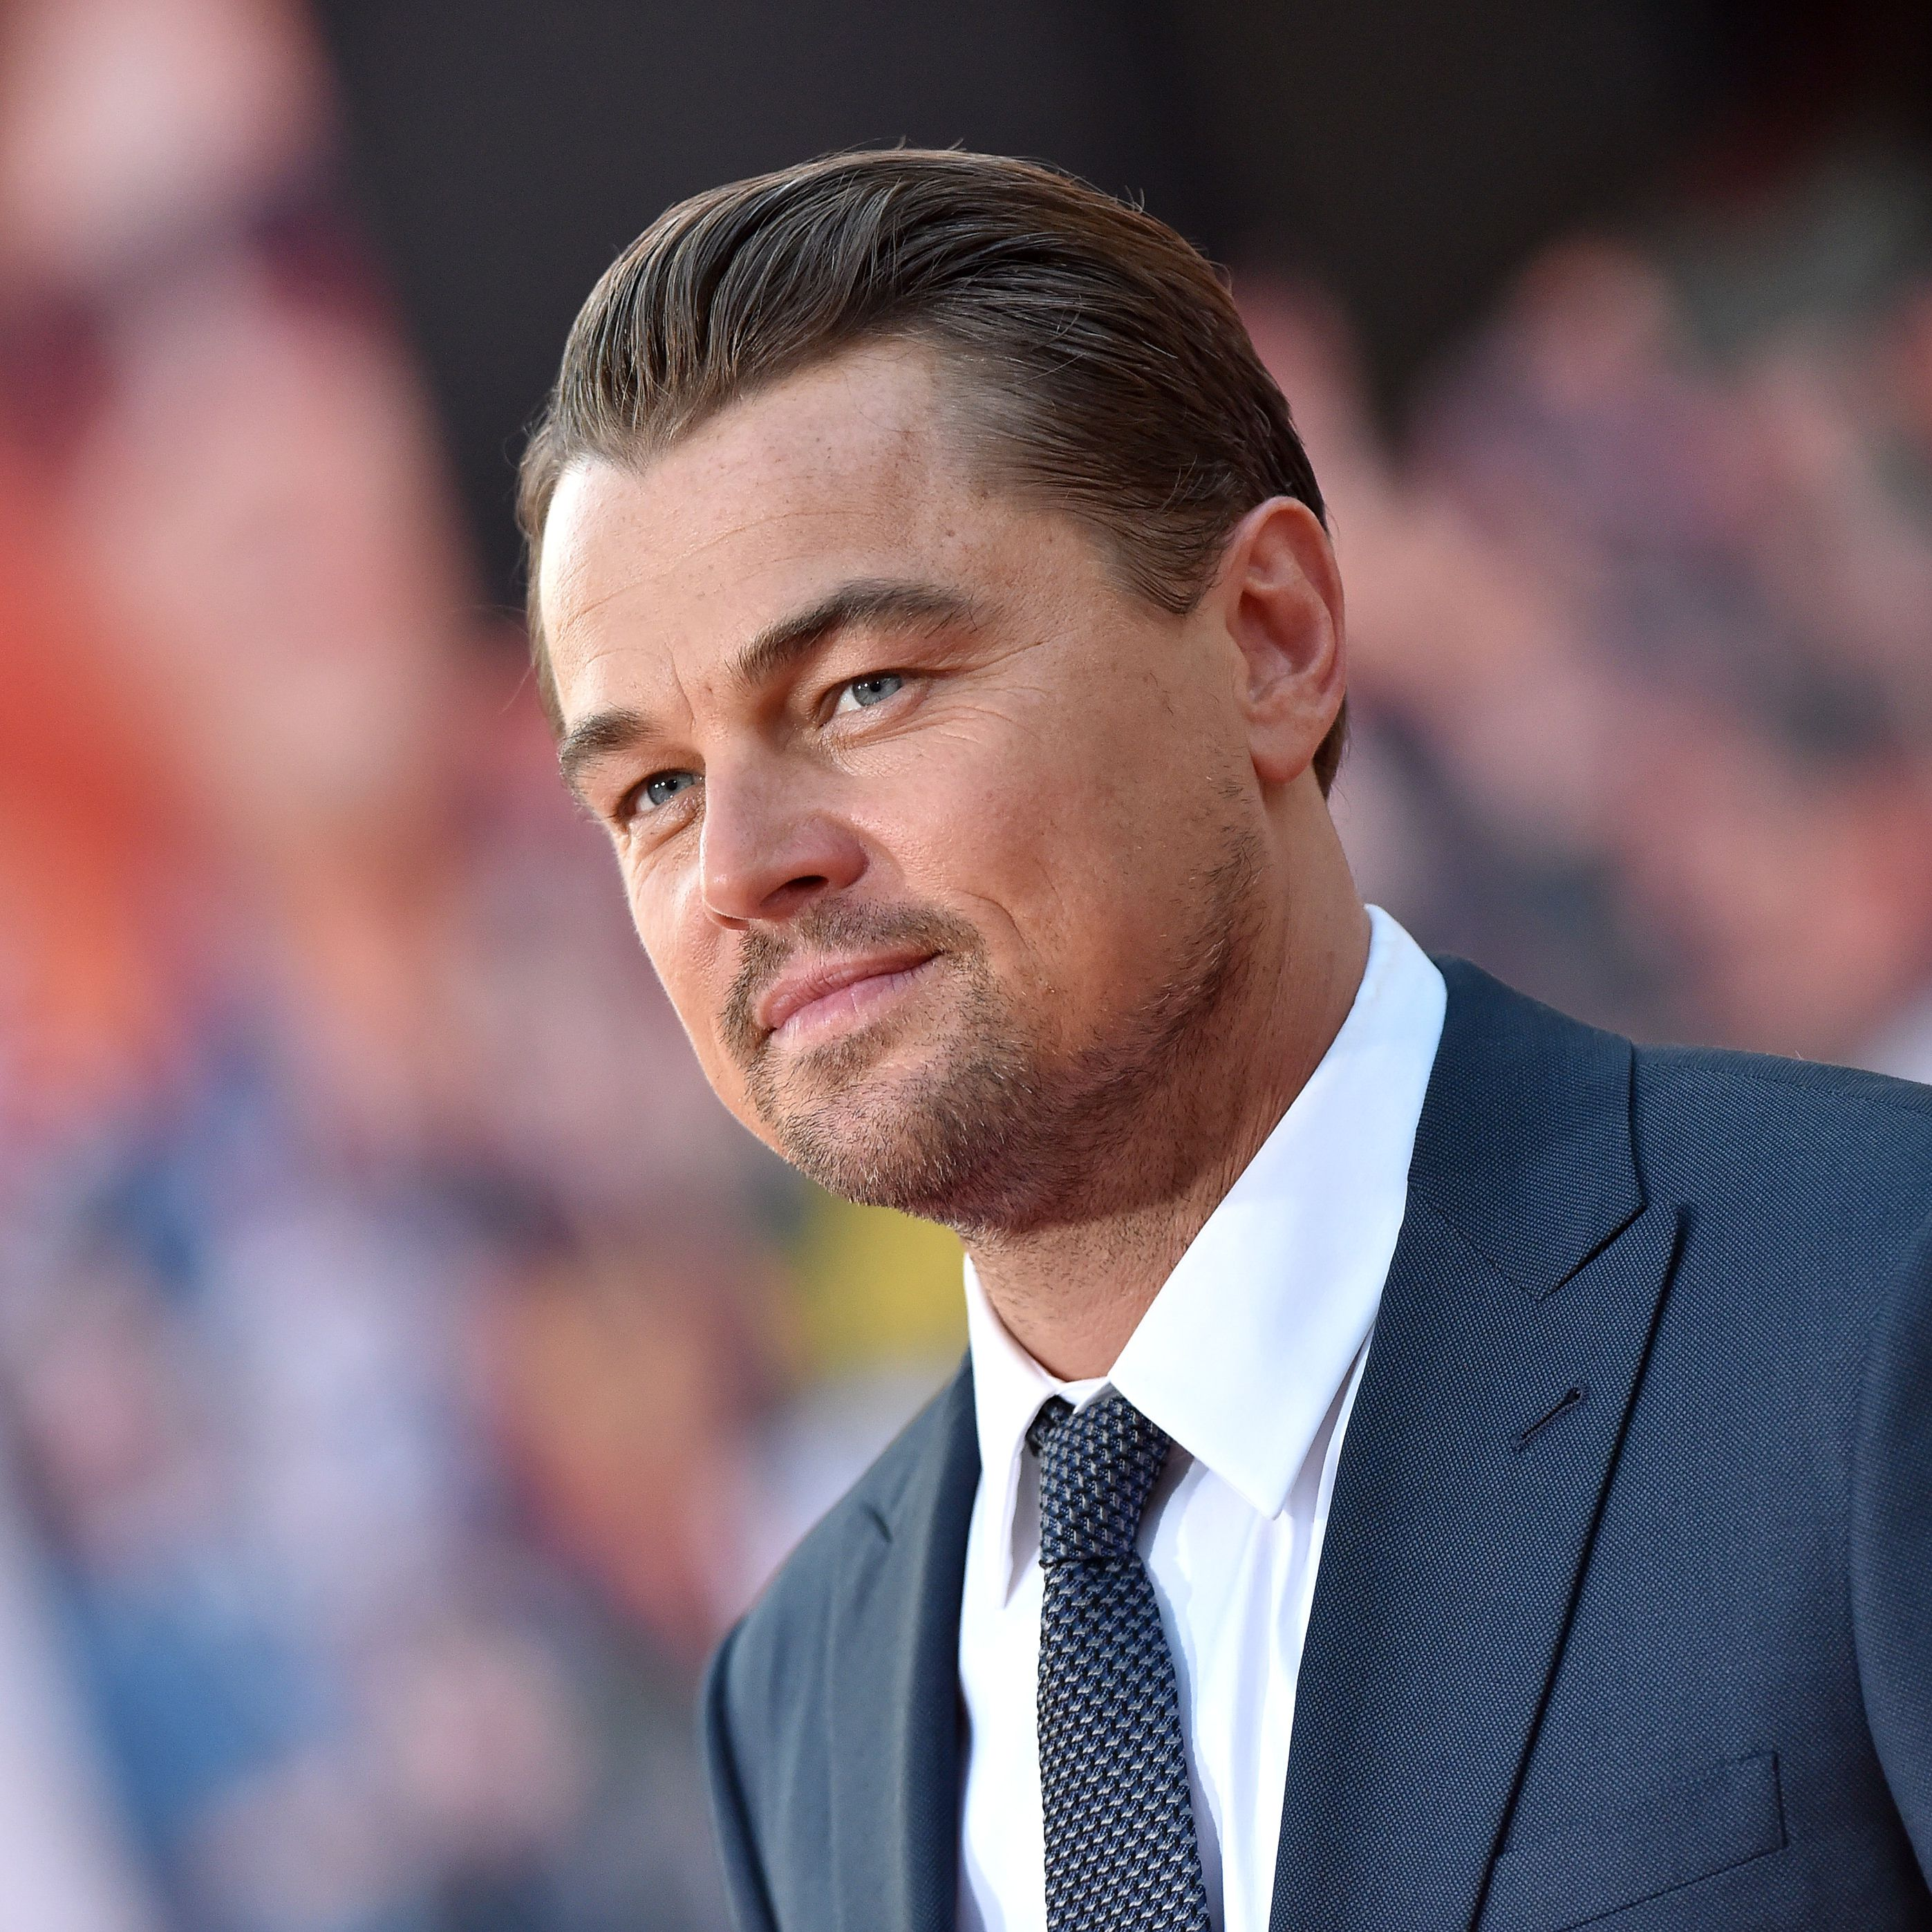 The 11 Best Haircuts for Men Over 11